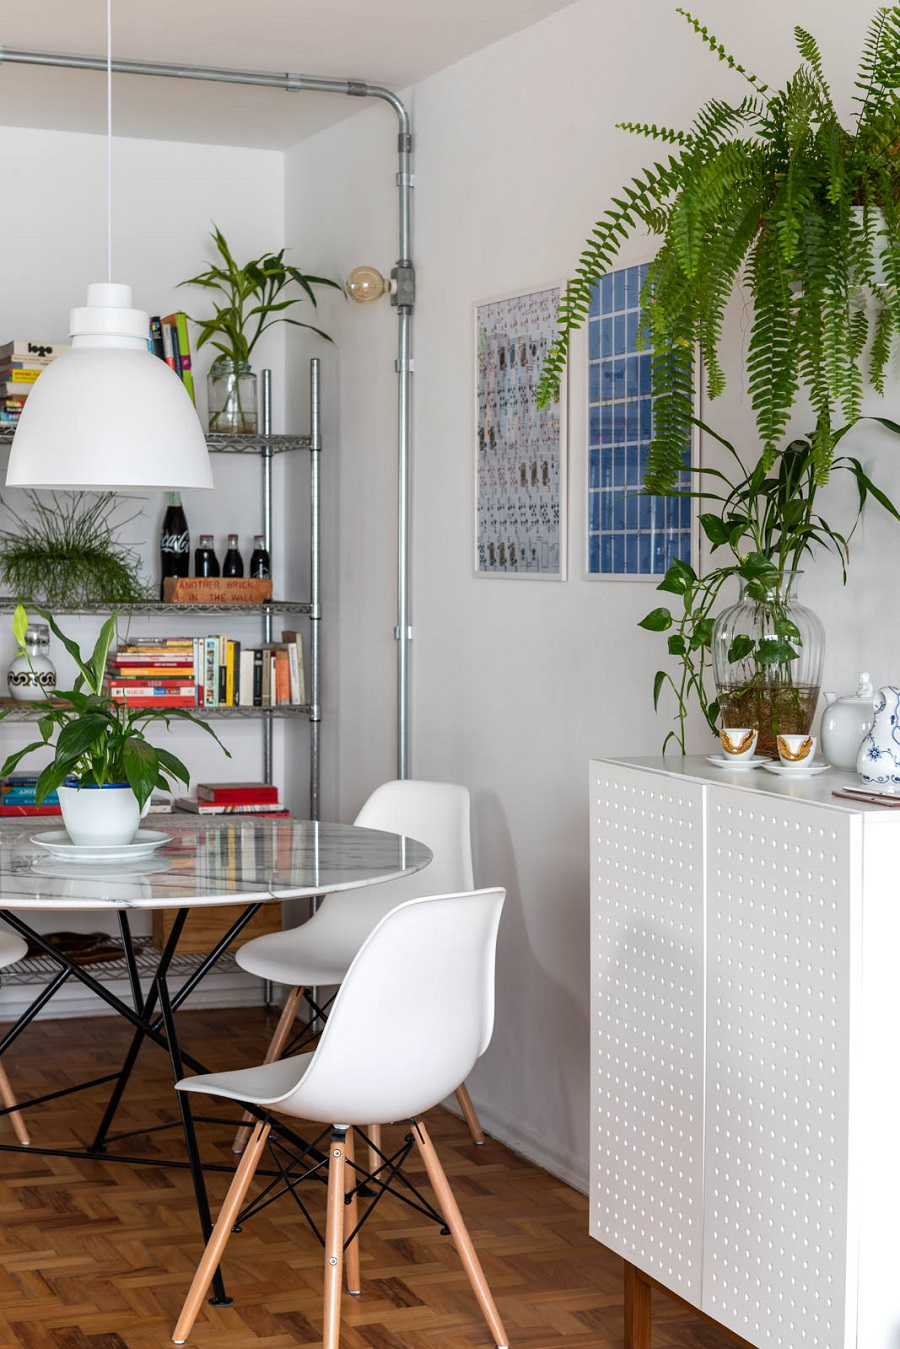 Chic and Affordable Ideas for Small Space Living